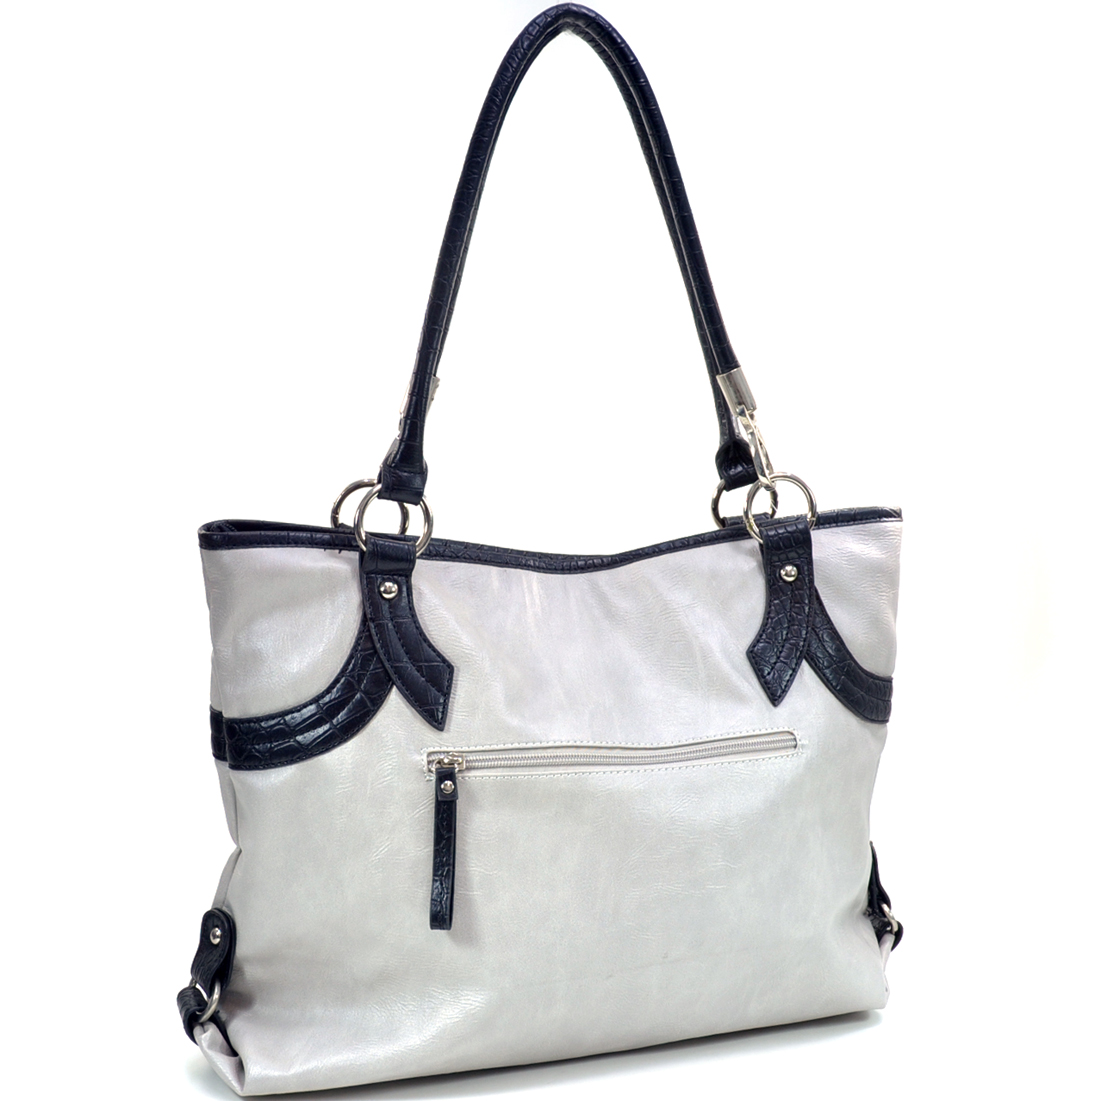 Two-Tone Tote Handbag